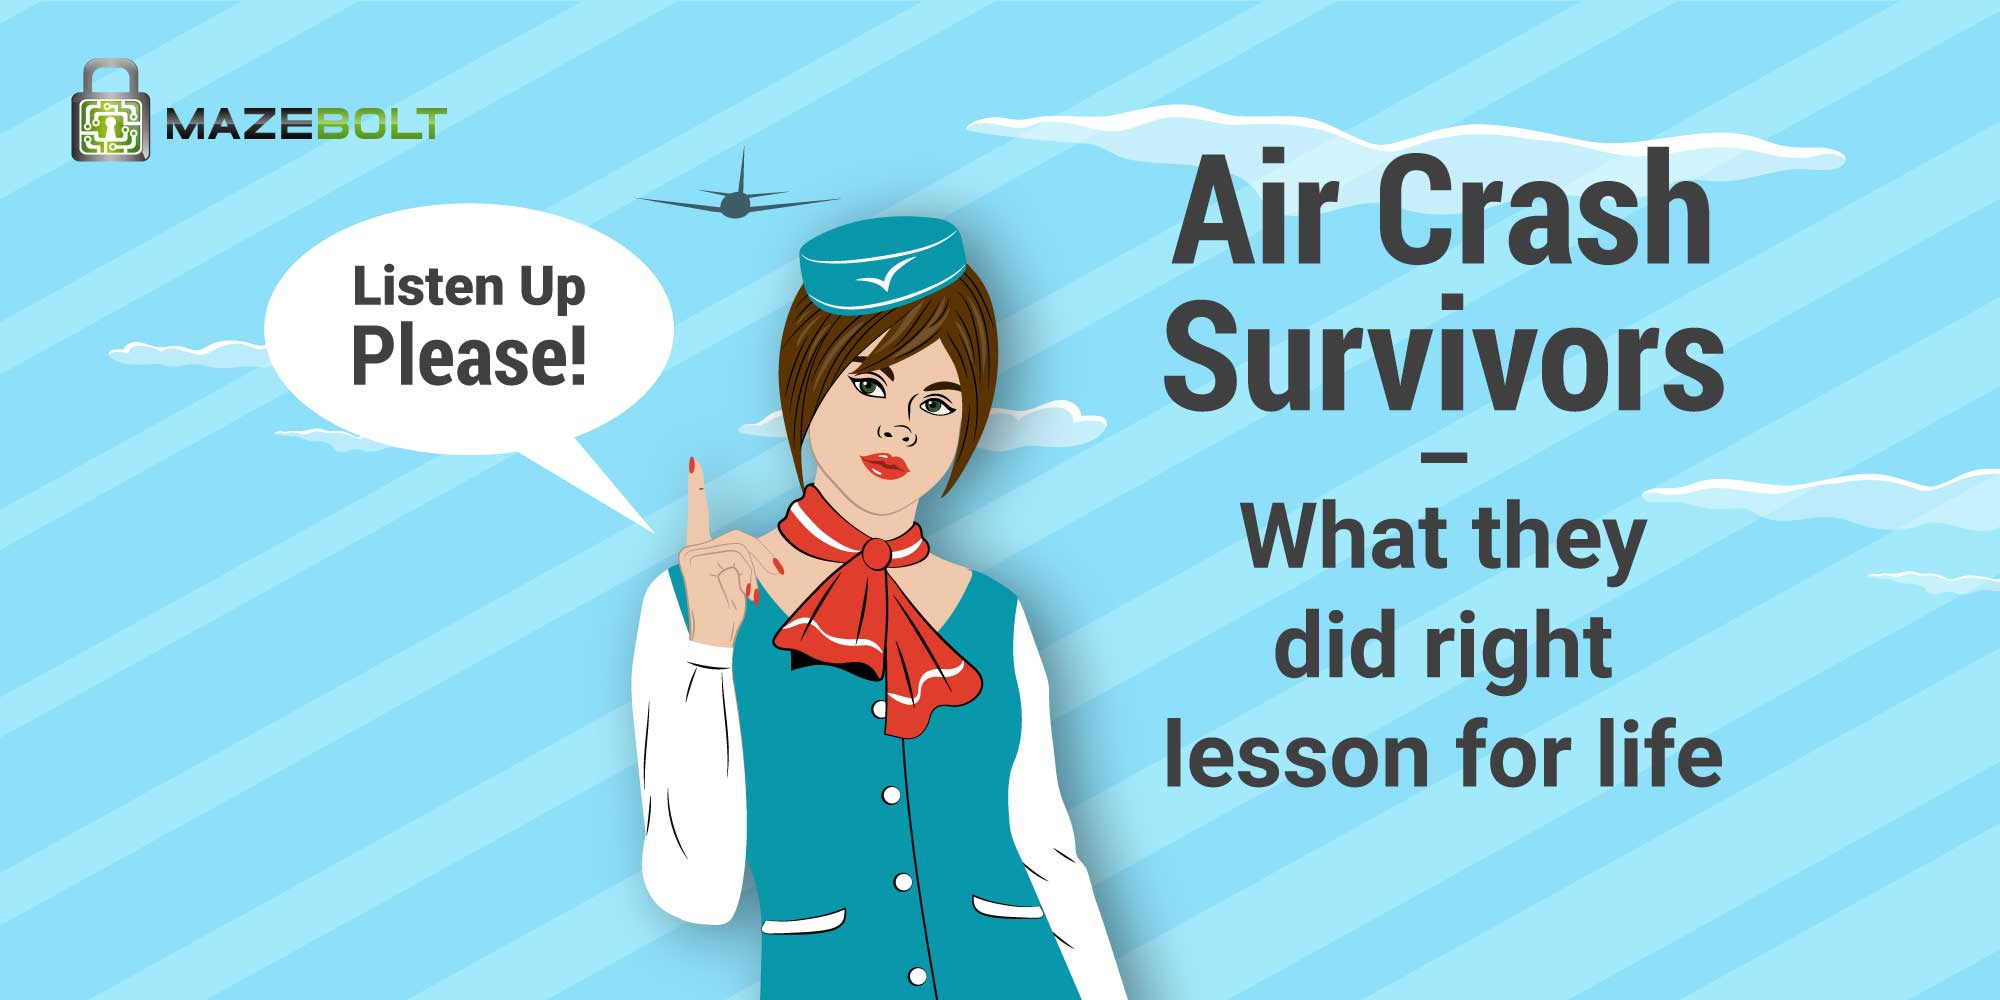 Air Crash Survivors Lessons for Life and DDoS